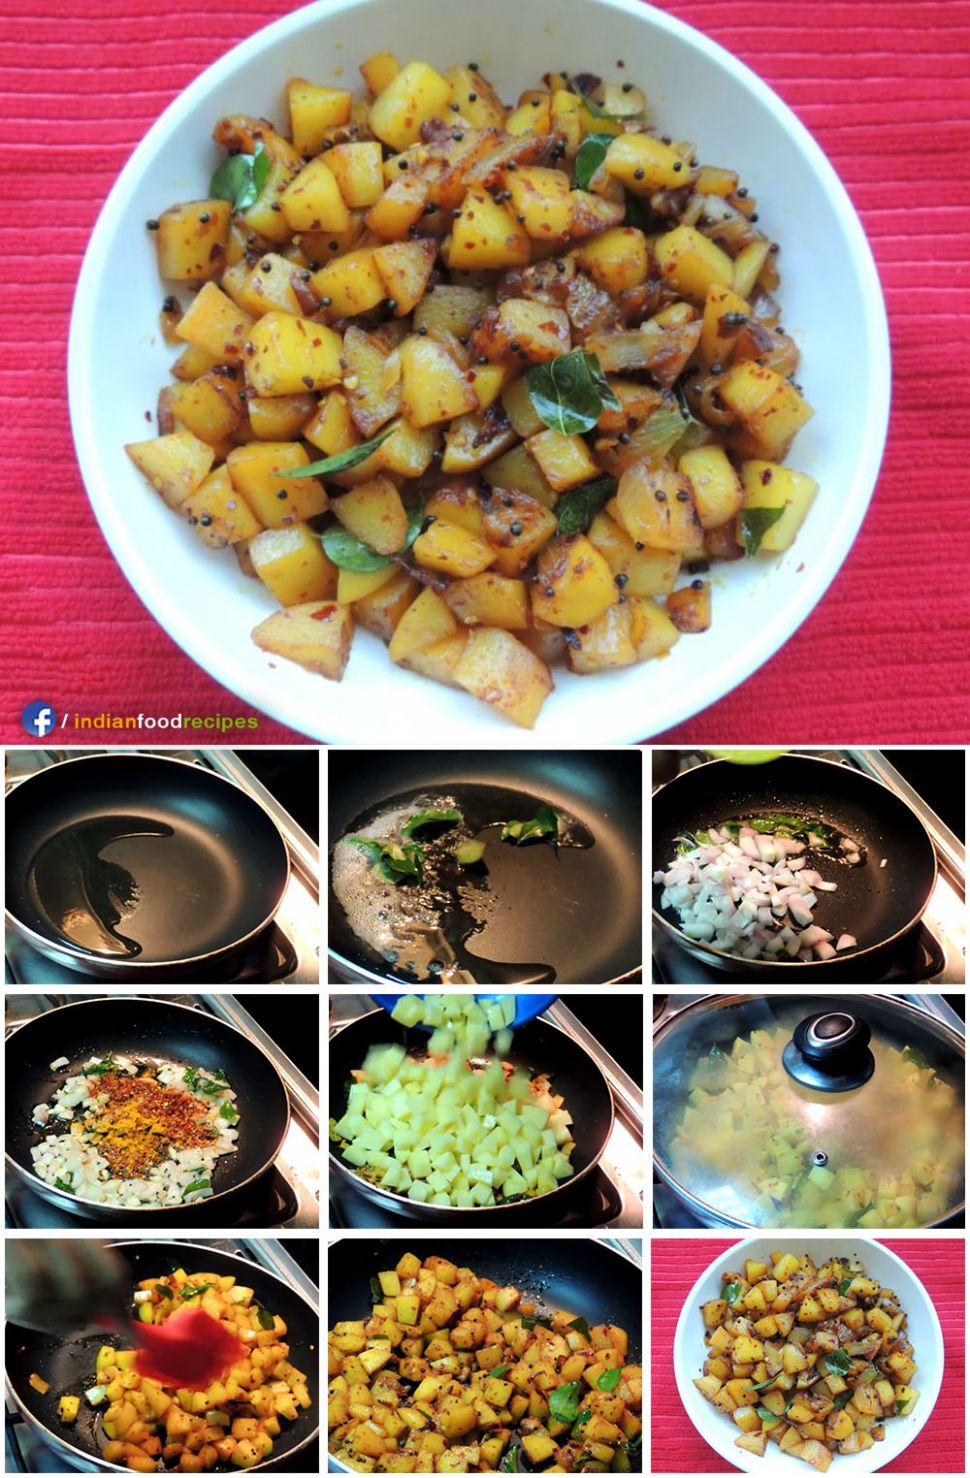 Spicy Potato Roast Kerala style recipe step by step pictures